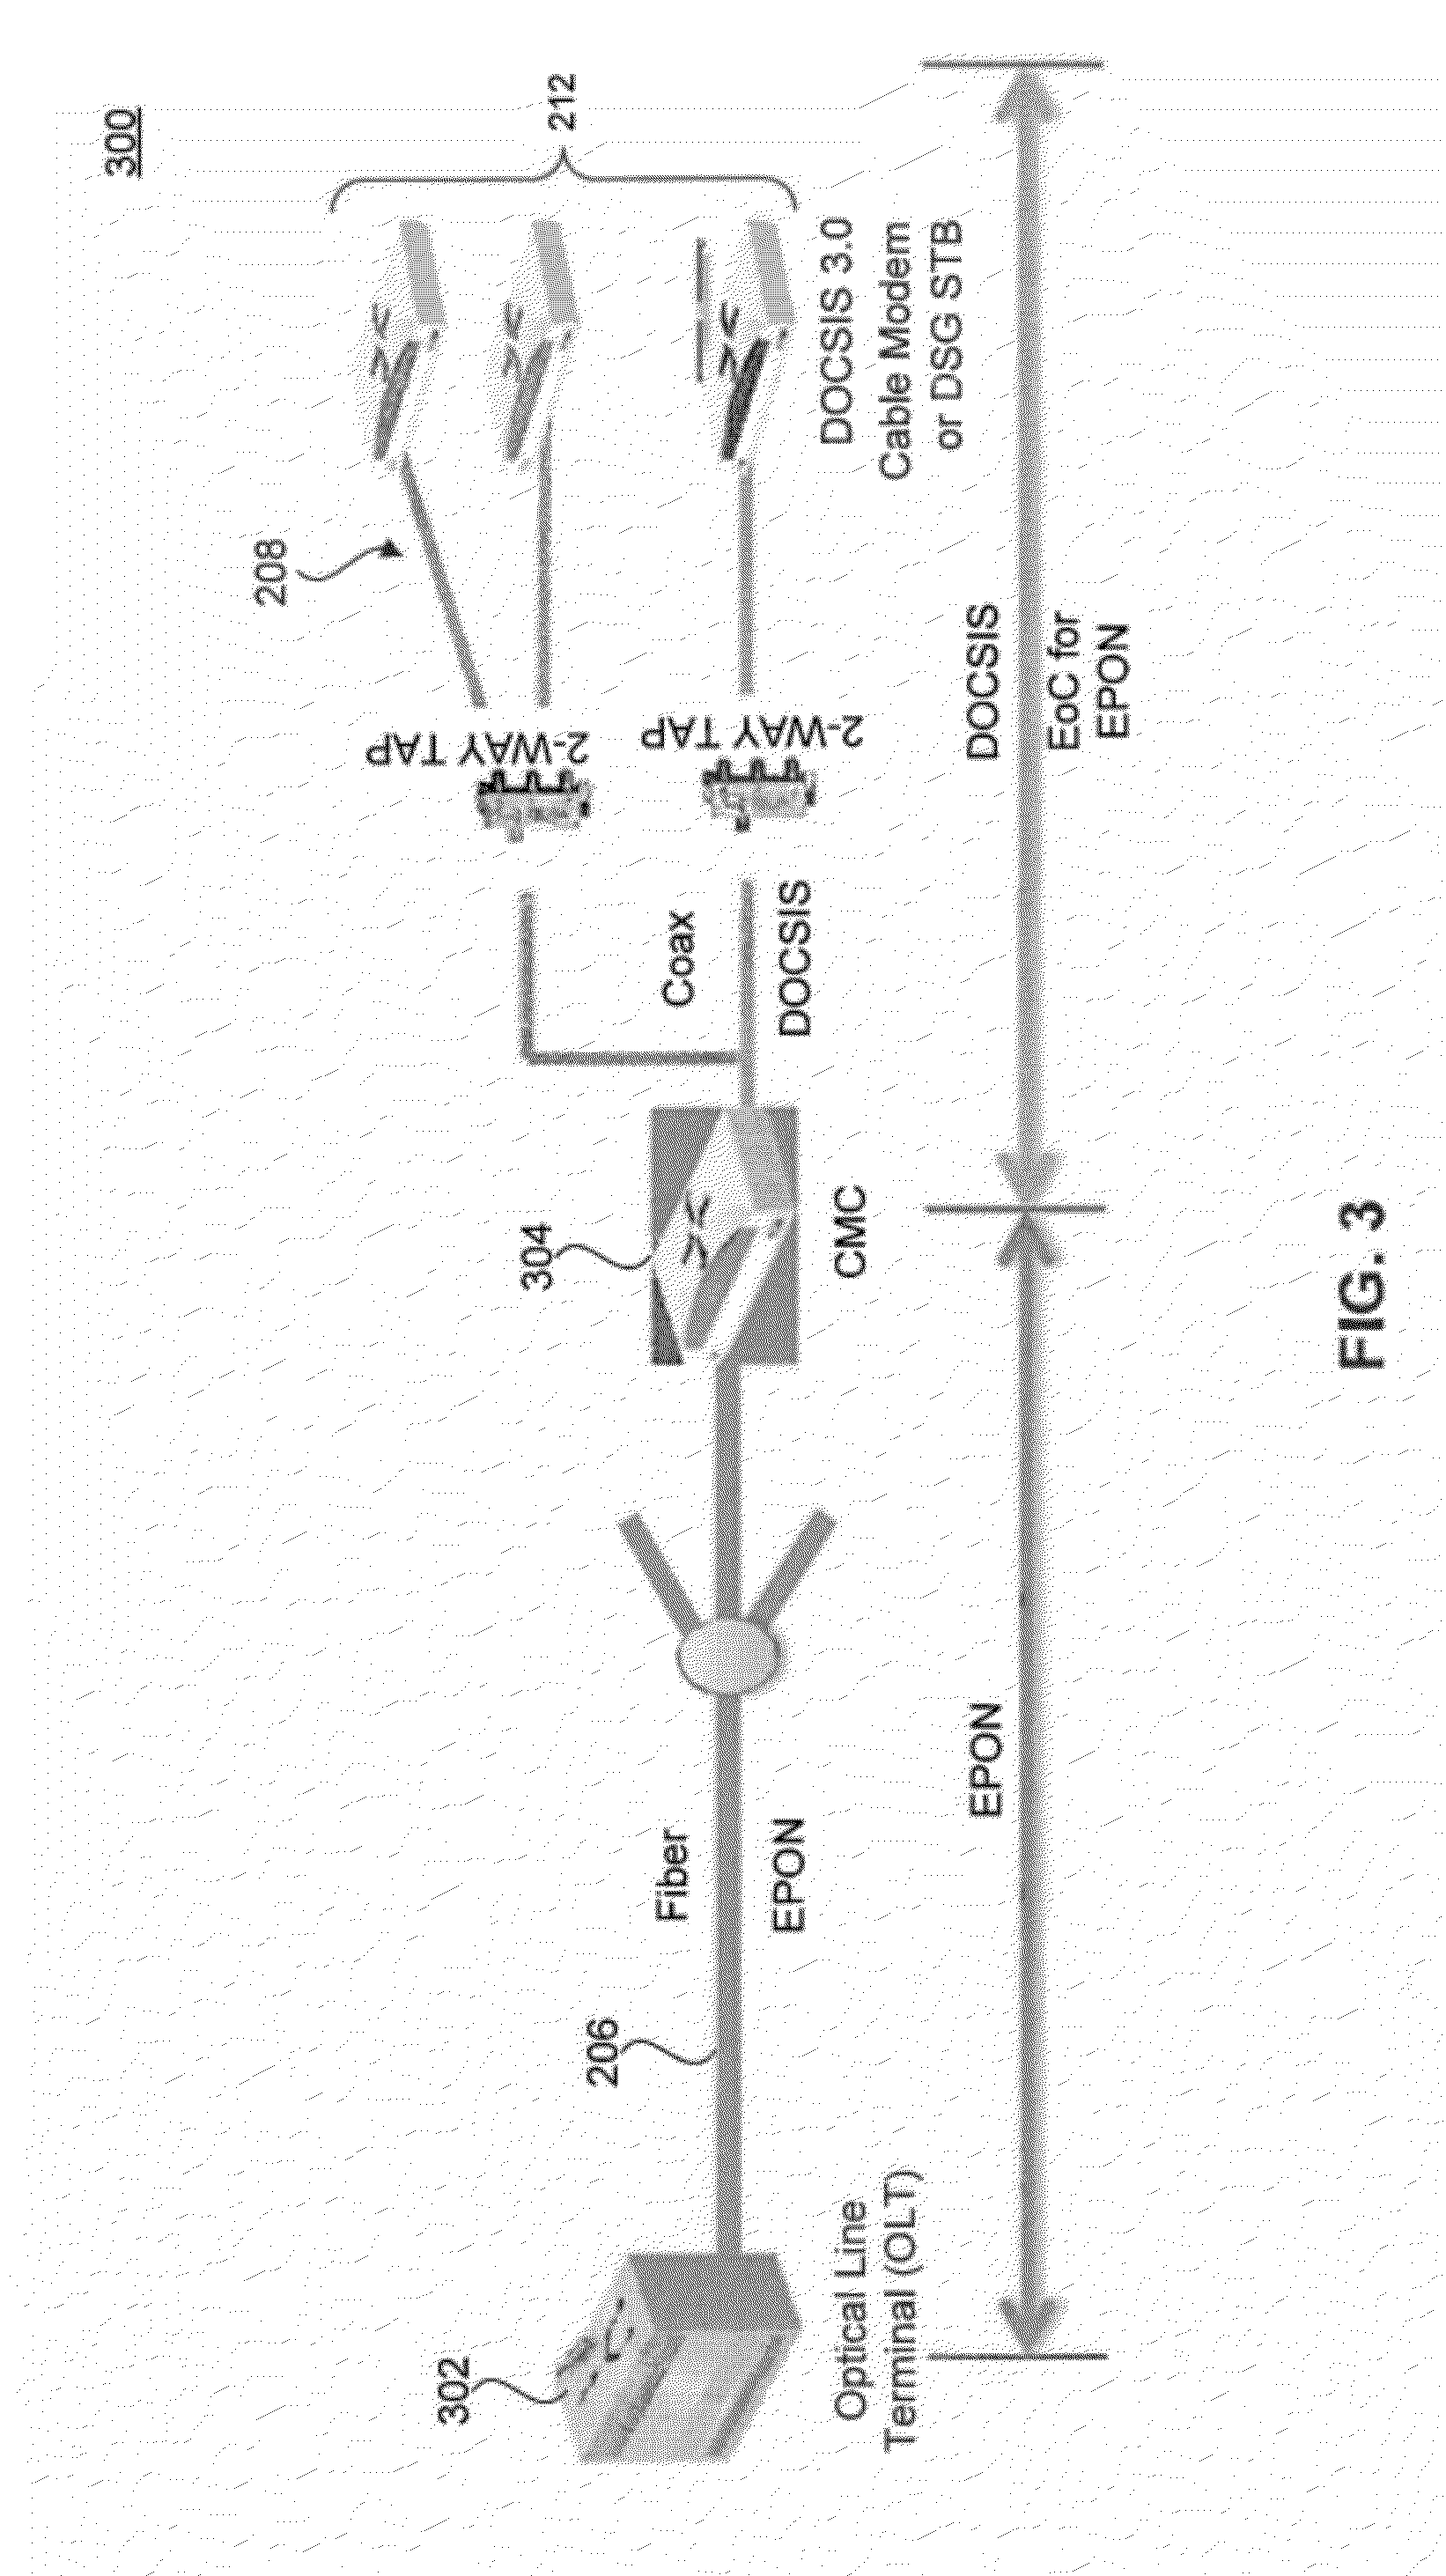 Patente Us20120257891 Traffic Switching In Hybrid Fiber Coaxial Hfc Coax Patent Drawing